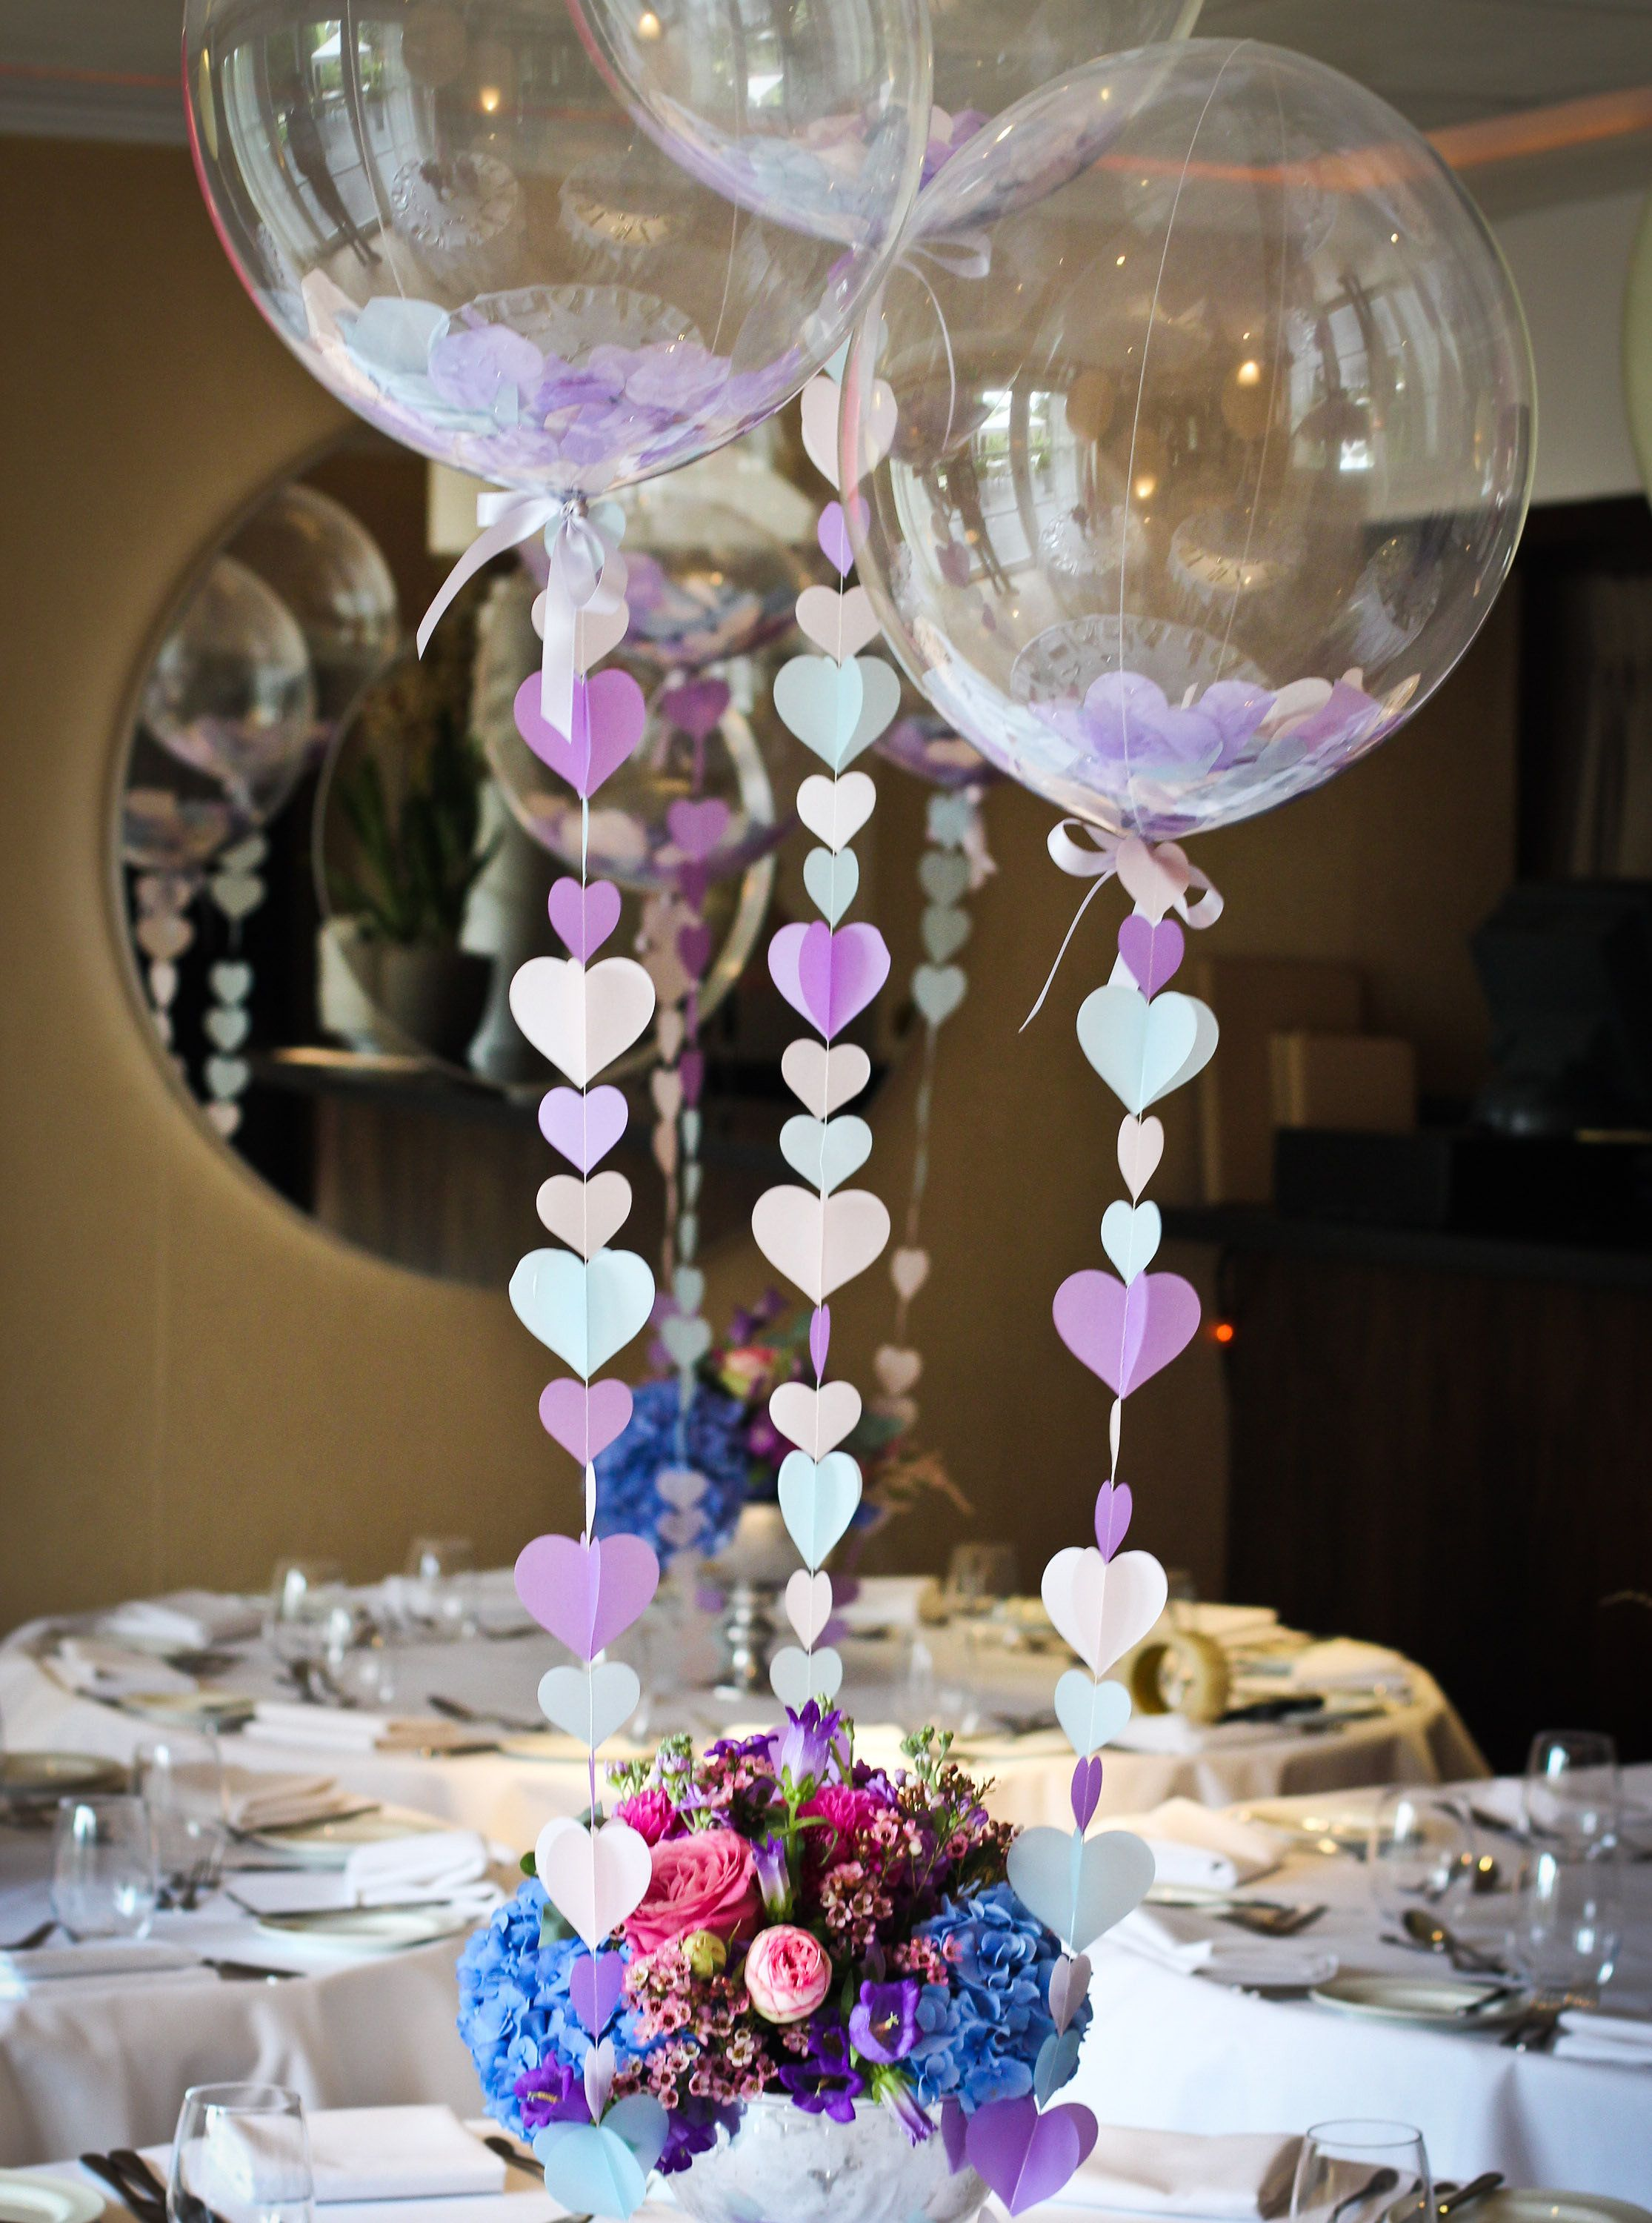 Balloon centrepiece table decoration with heart strings for Balloons arrangement decoration